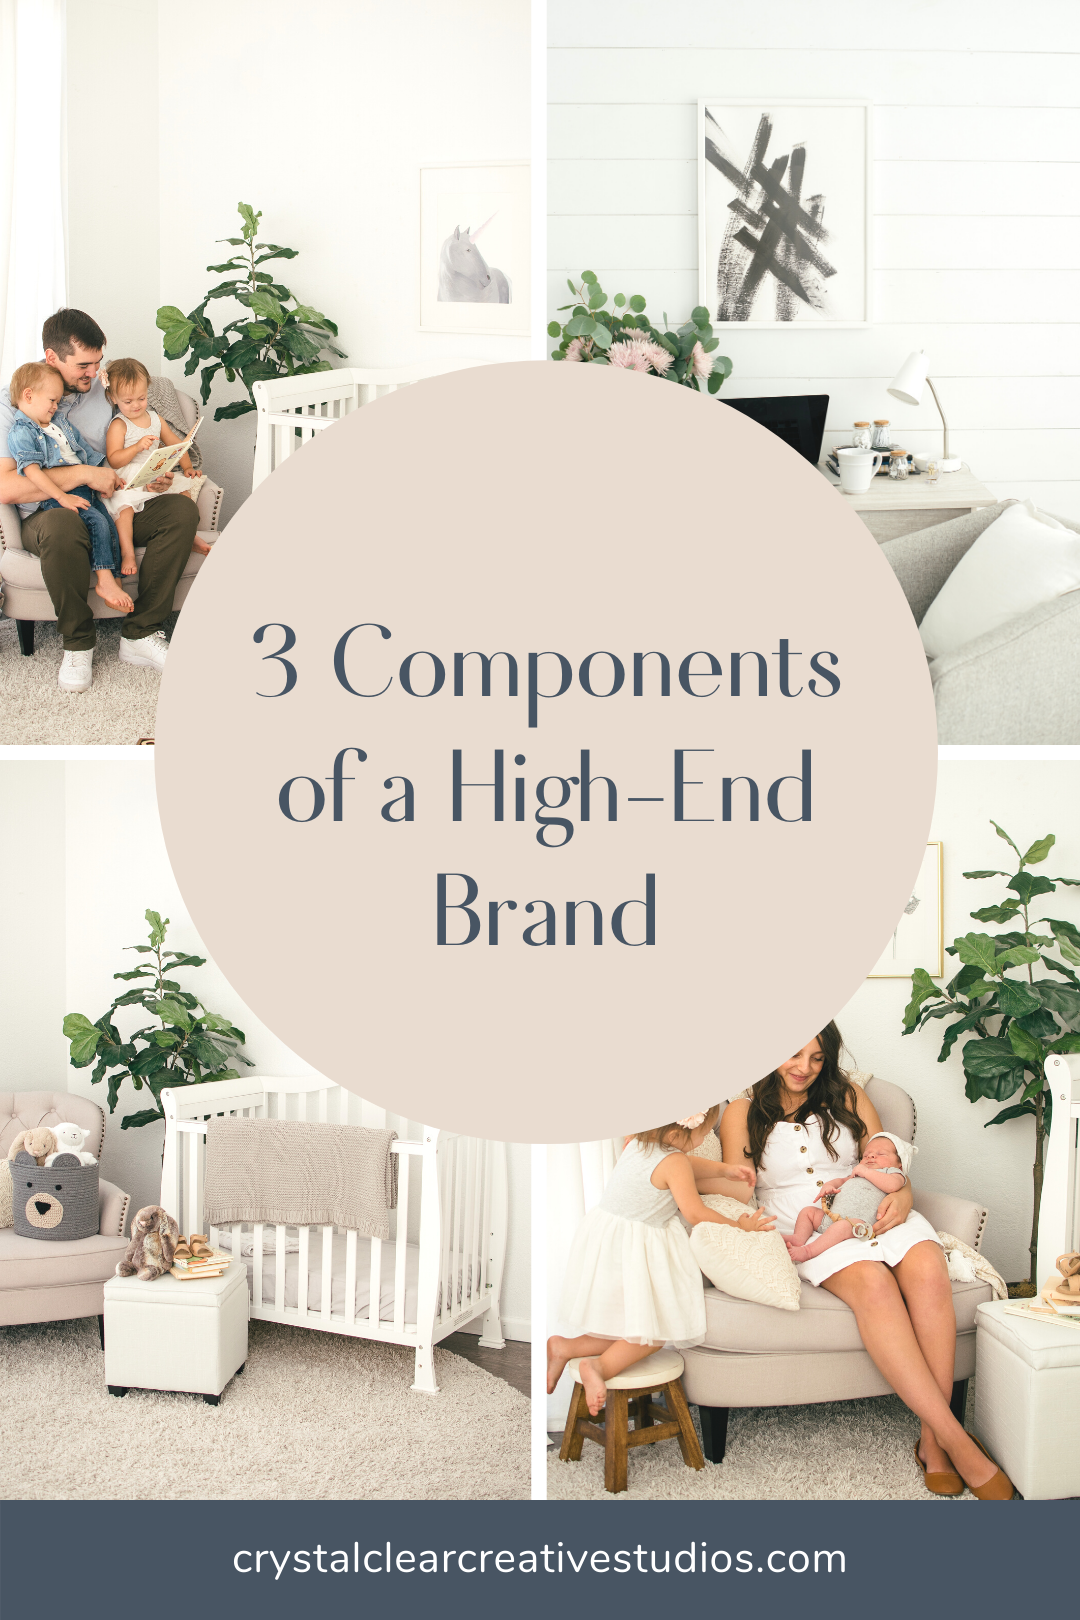 3 Components of a High-End Brand